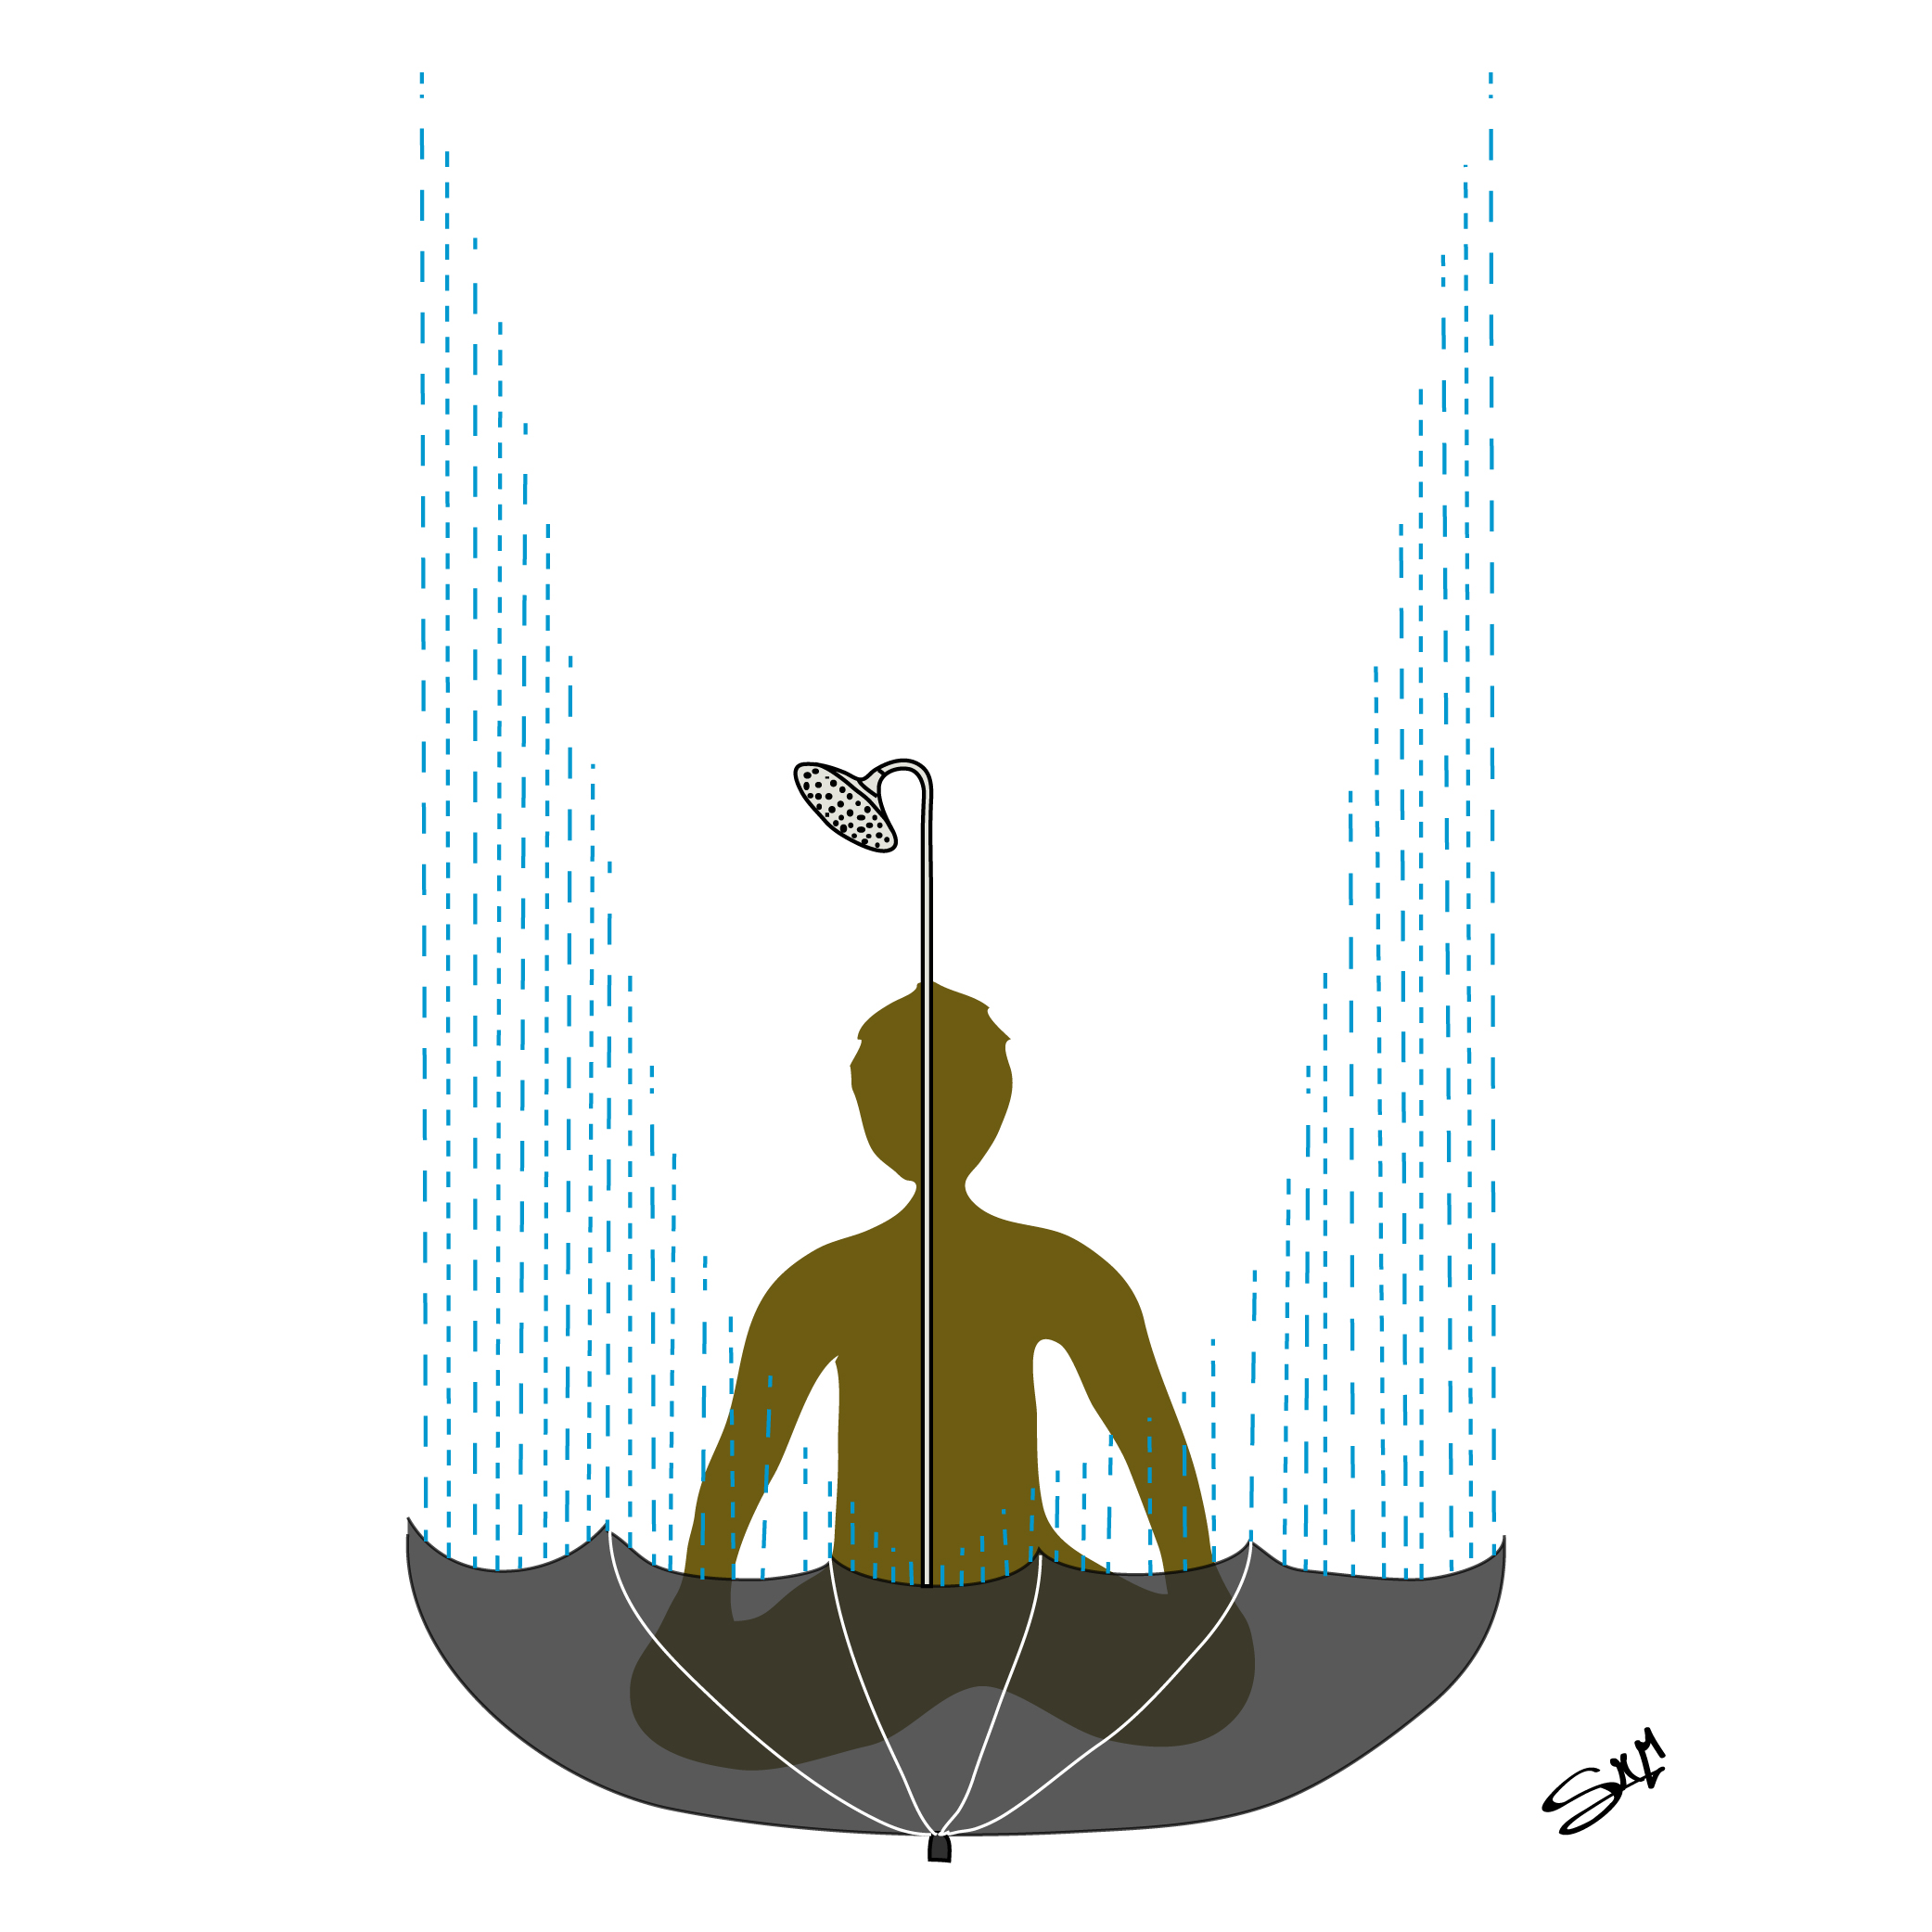 Shower Illustration-Santiago Martinez-01